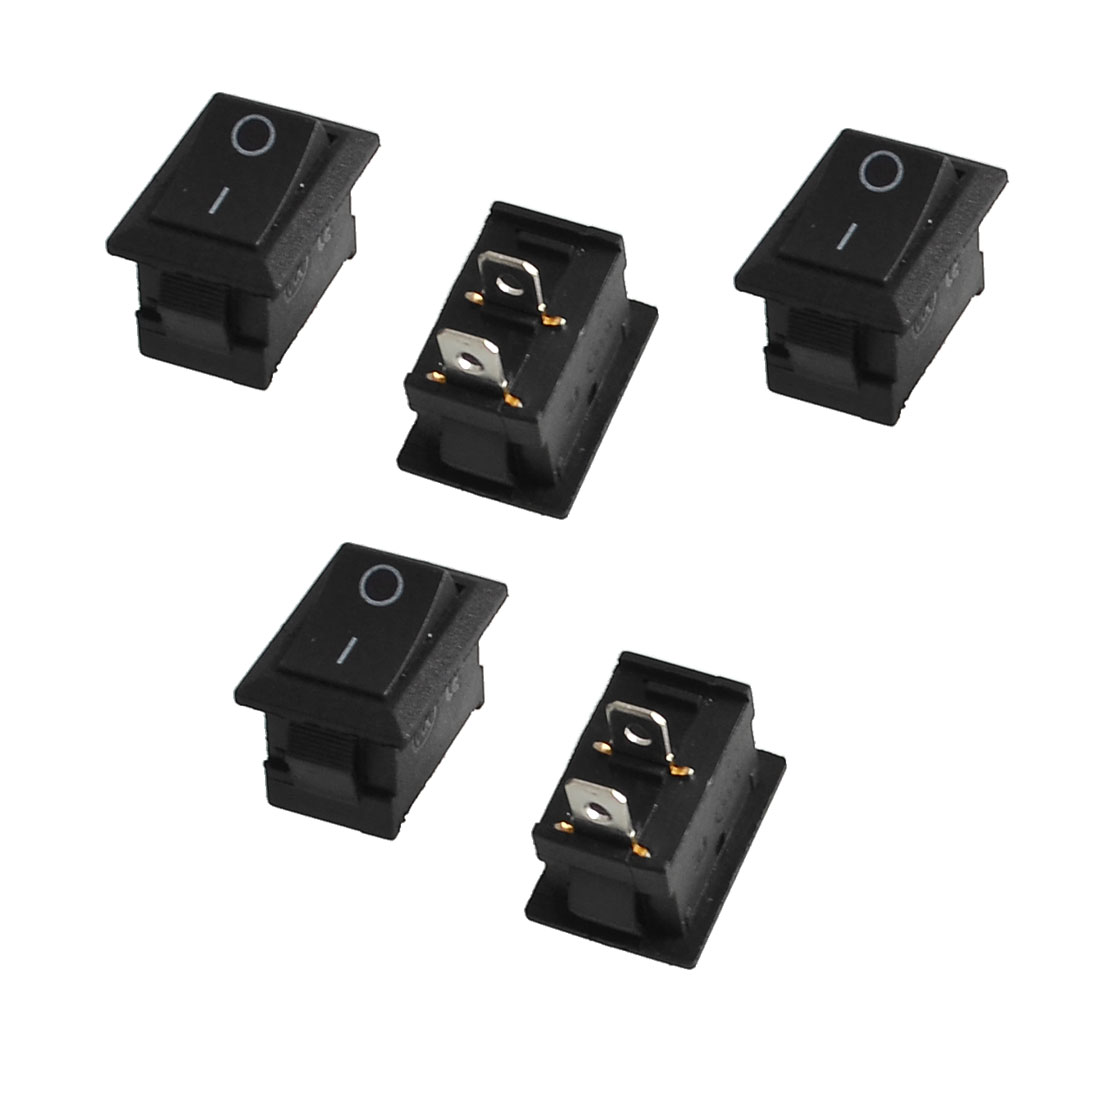 5 Pcs AC 250V/6A 125V/10A Black Plastic ON OFF SPST Rocker Switches